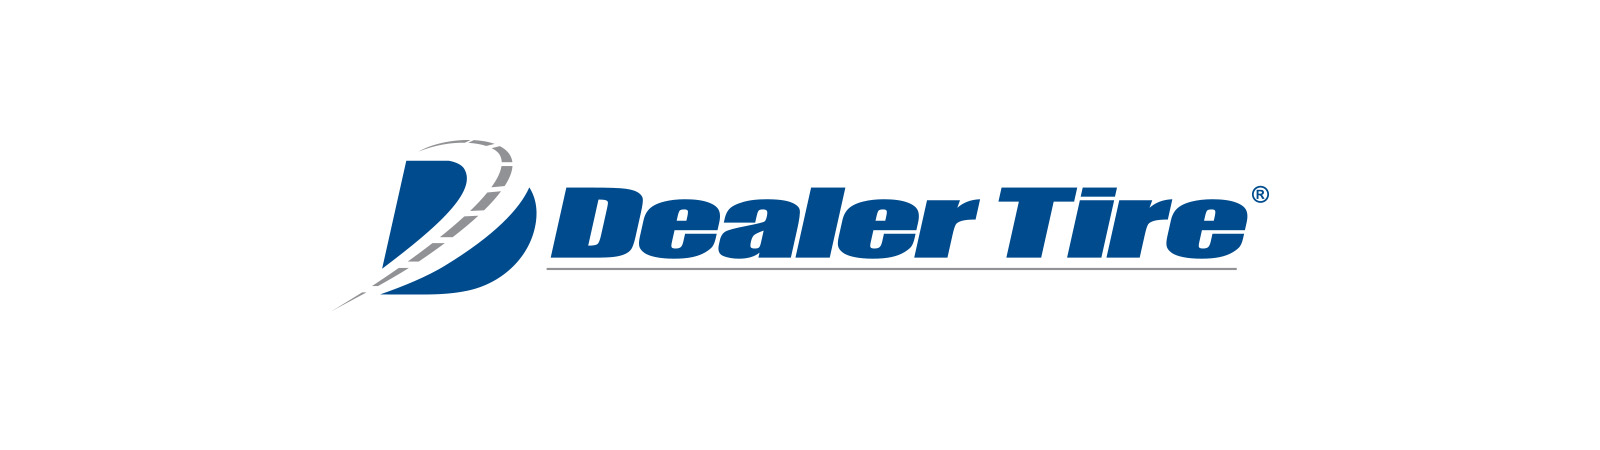 Dealer Tire Logo Image